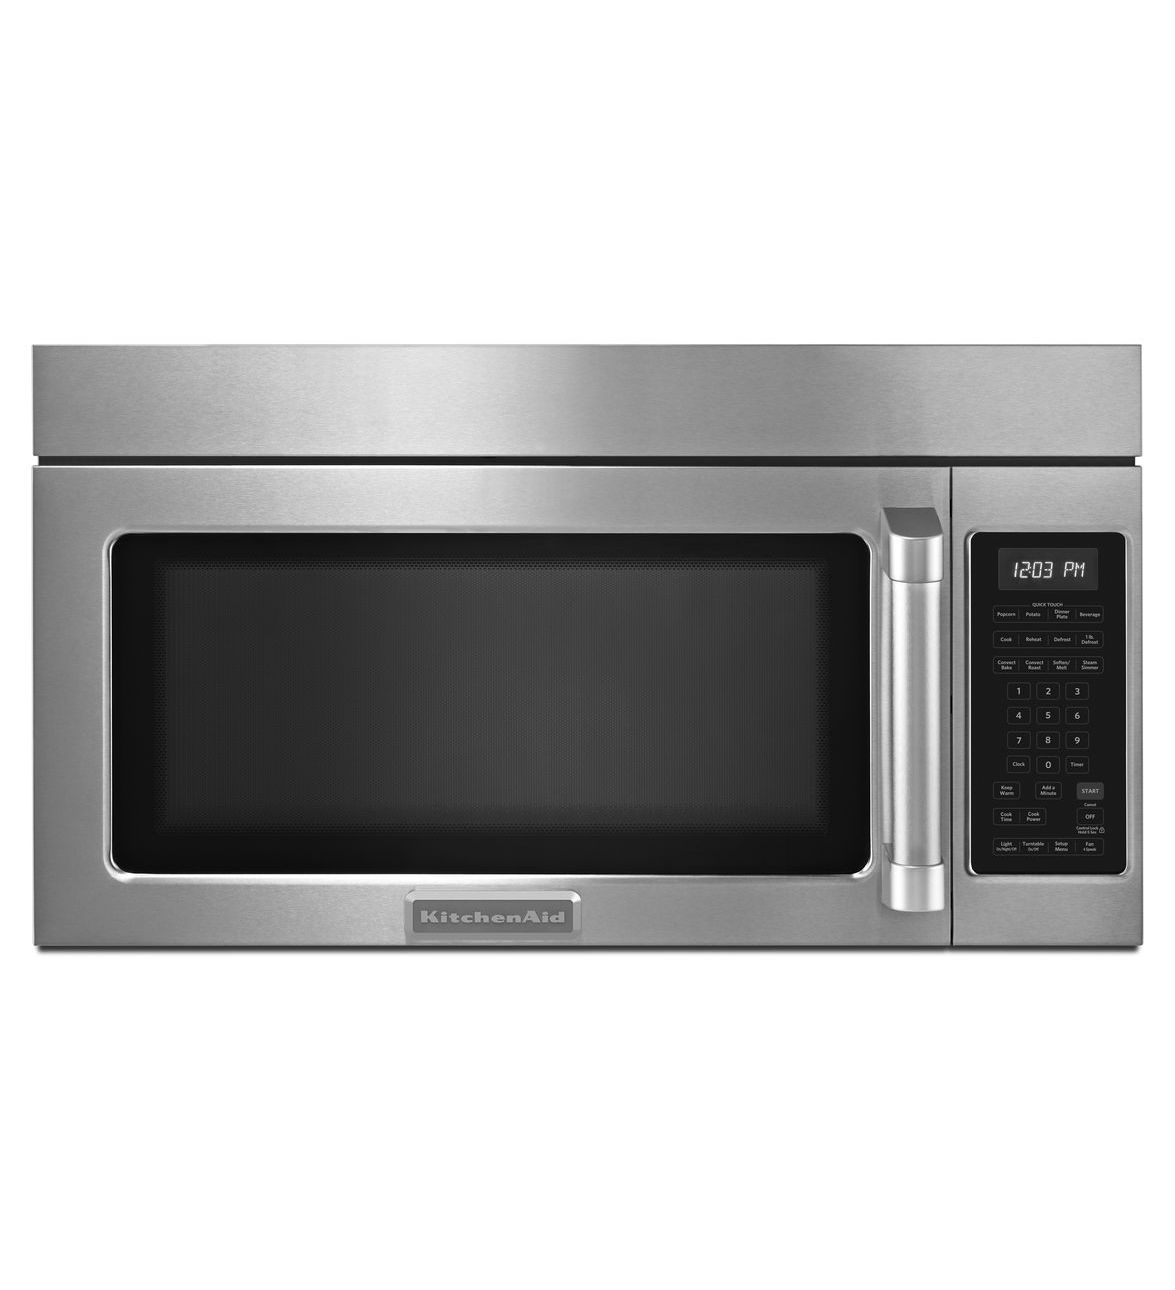 Photo Gallery Of The What Are Kitchenaid Microwaves And Customers Think About Them